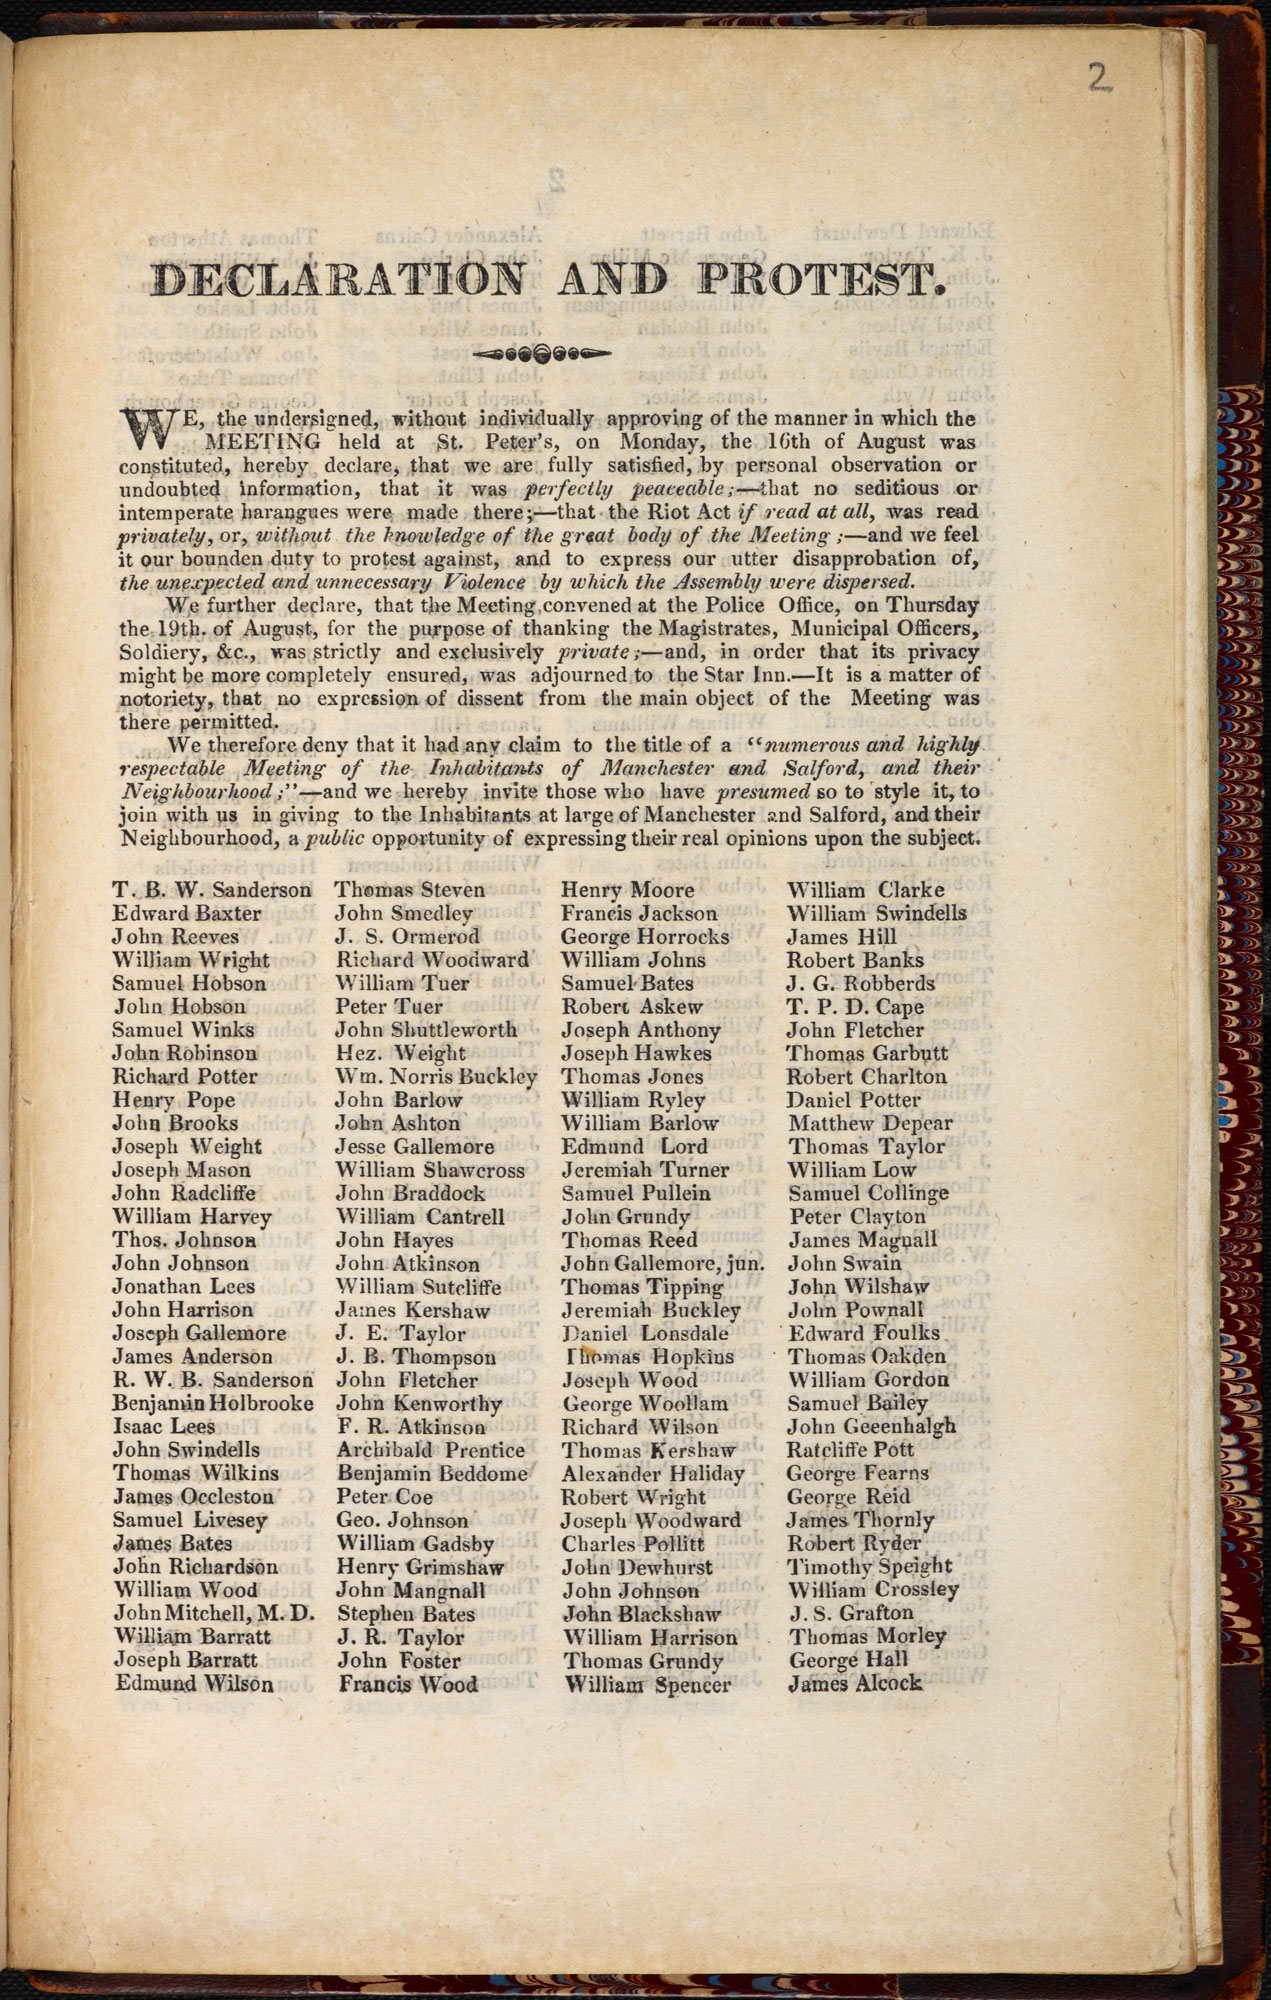 Petition declaring support for the victims of the Peterloo Massacre and the protestors [page: [1]]